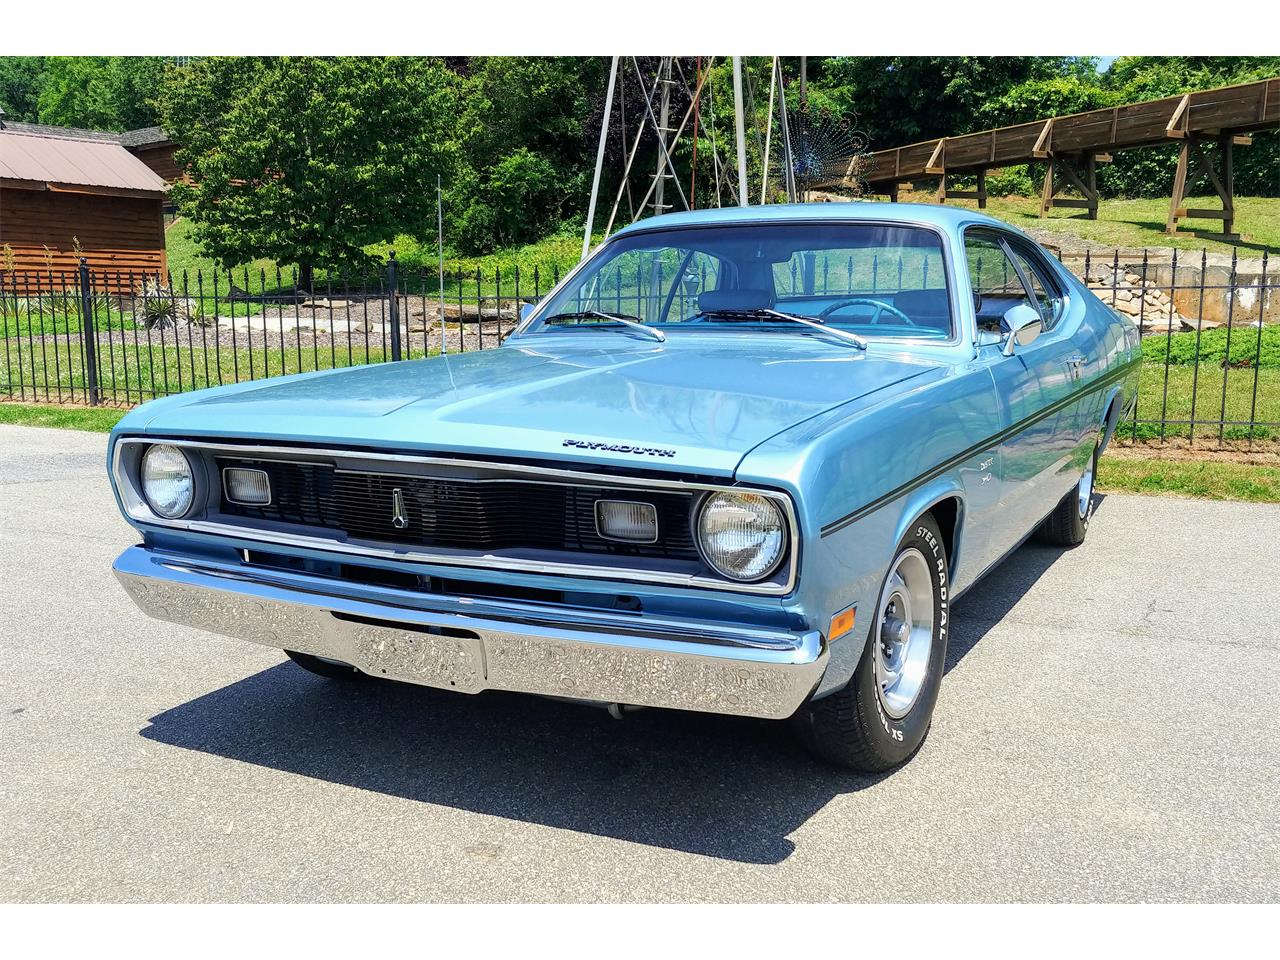 1970 Plymouth Duster For Sale In Cumming Ga Classiccarsbay Com